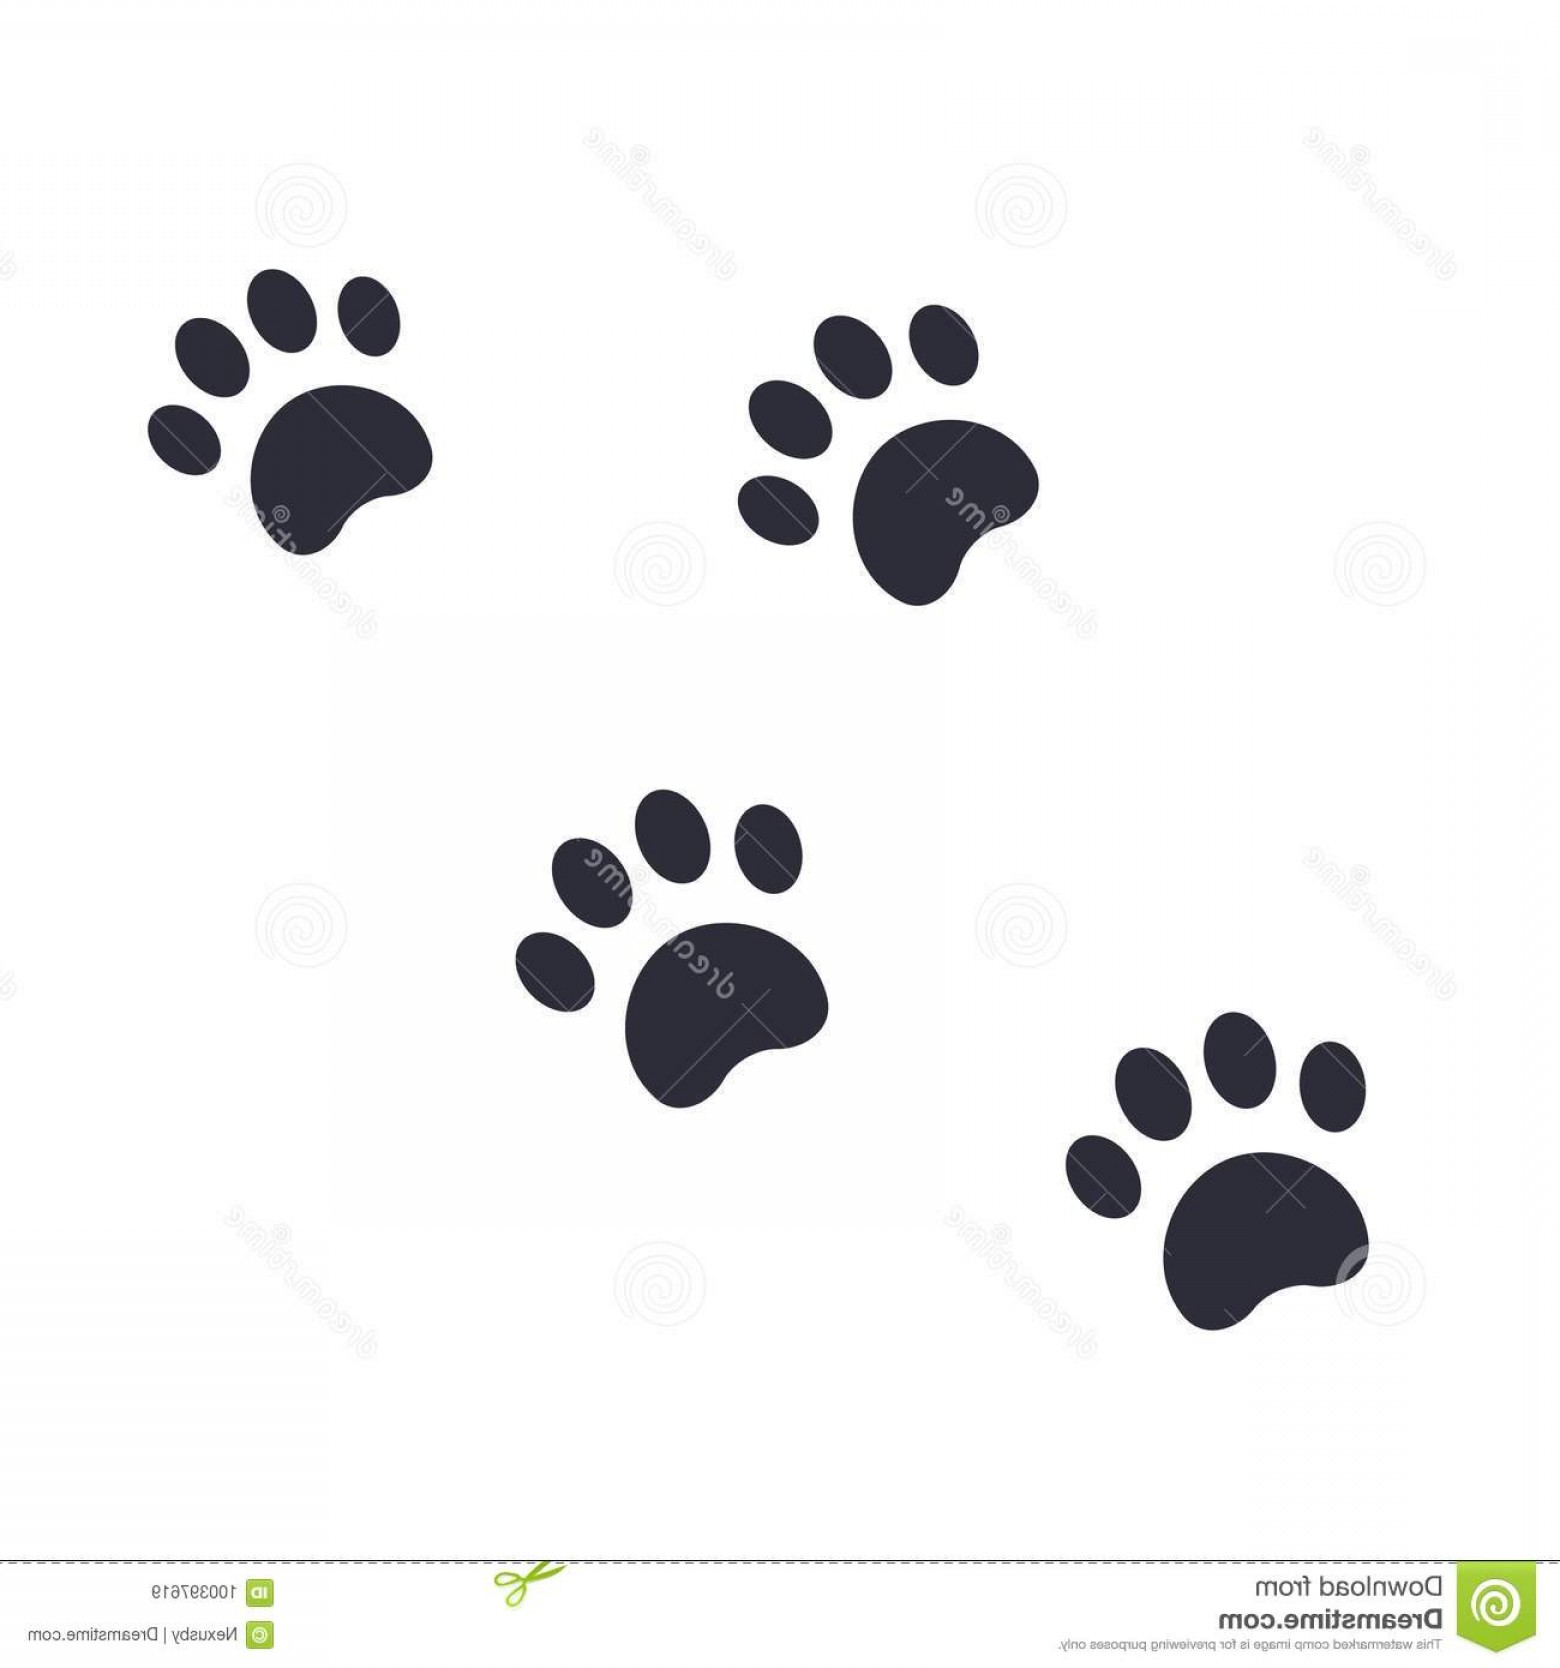 Footprint Vector EPS: Paw Footprints Vector Illustration Eps File Easy To Edit Paw Footprints Vector Illustration Image